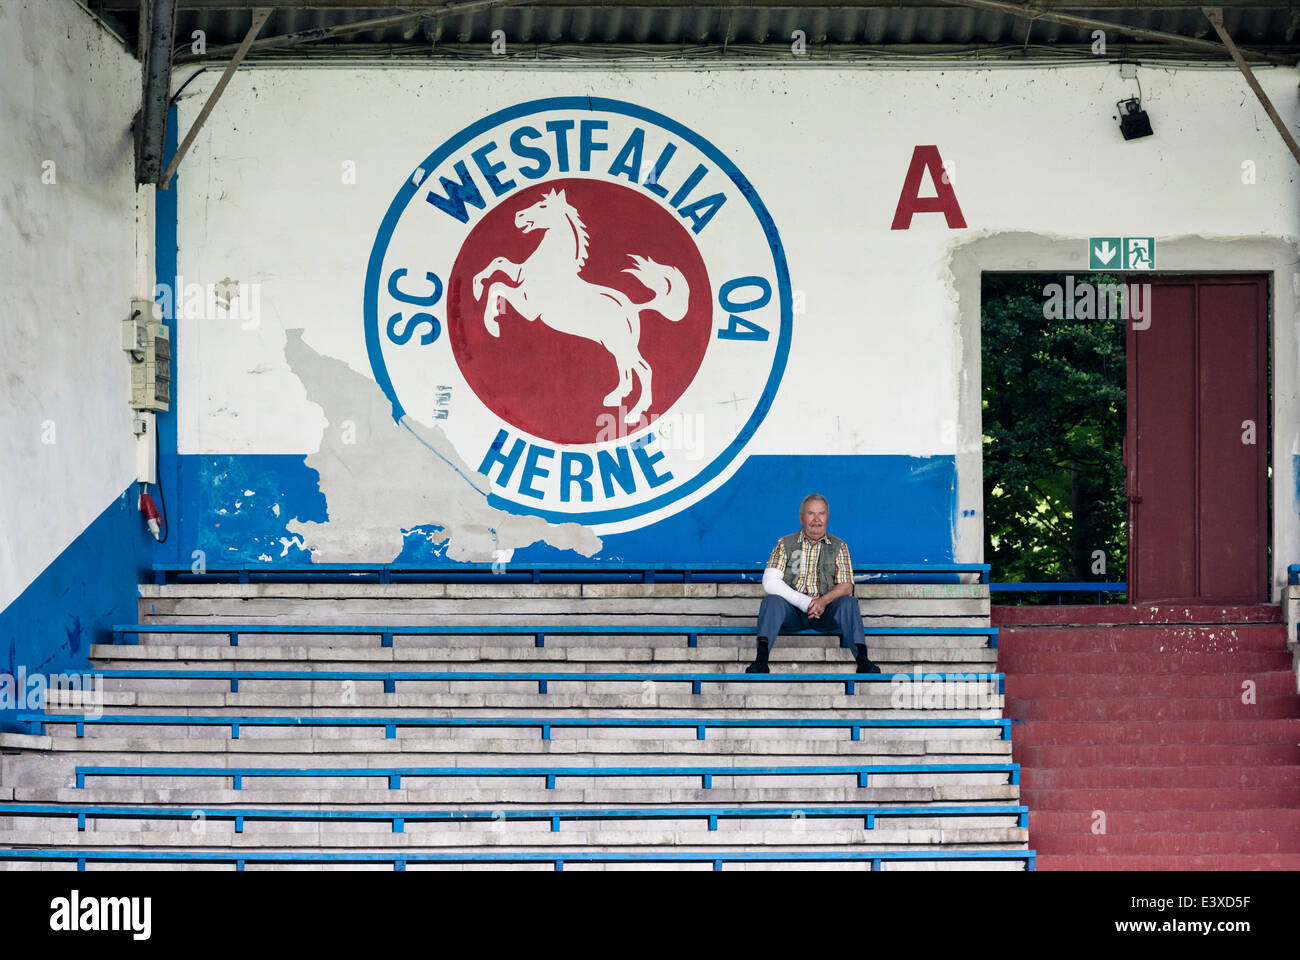 A single spectator sits on the derelict stands of the formerly renowned football club Westfalia Herne. - Stock Image